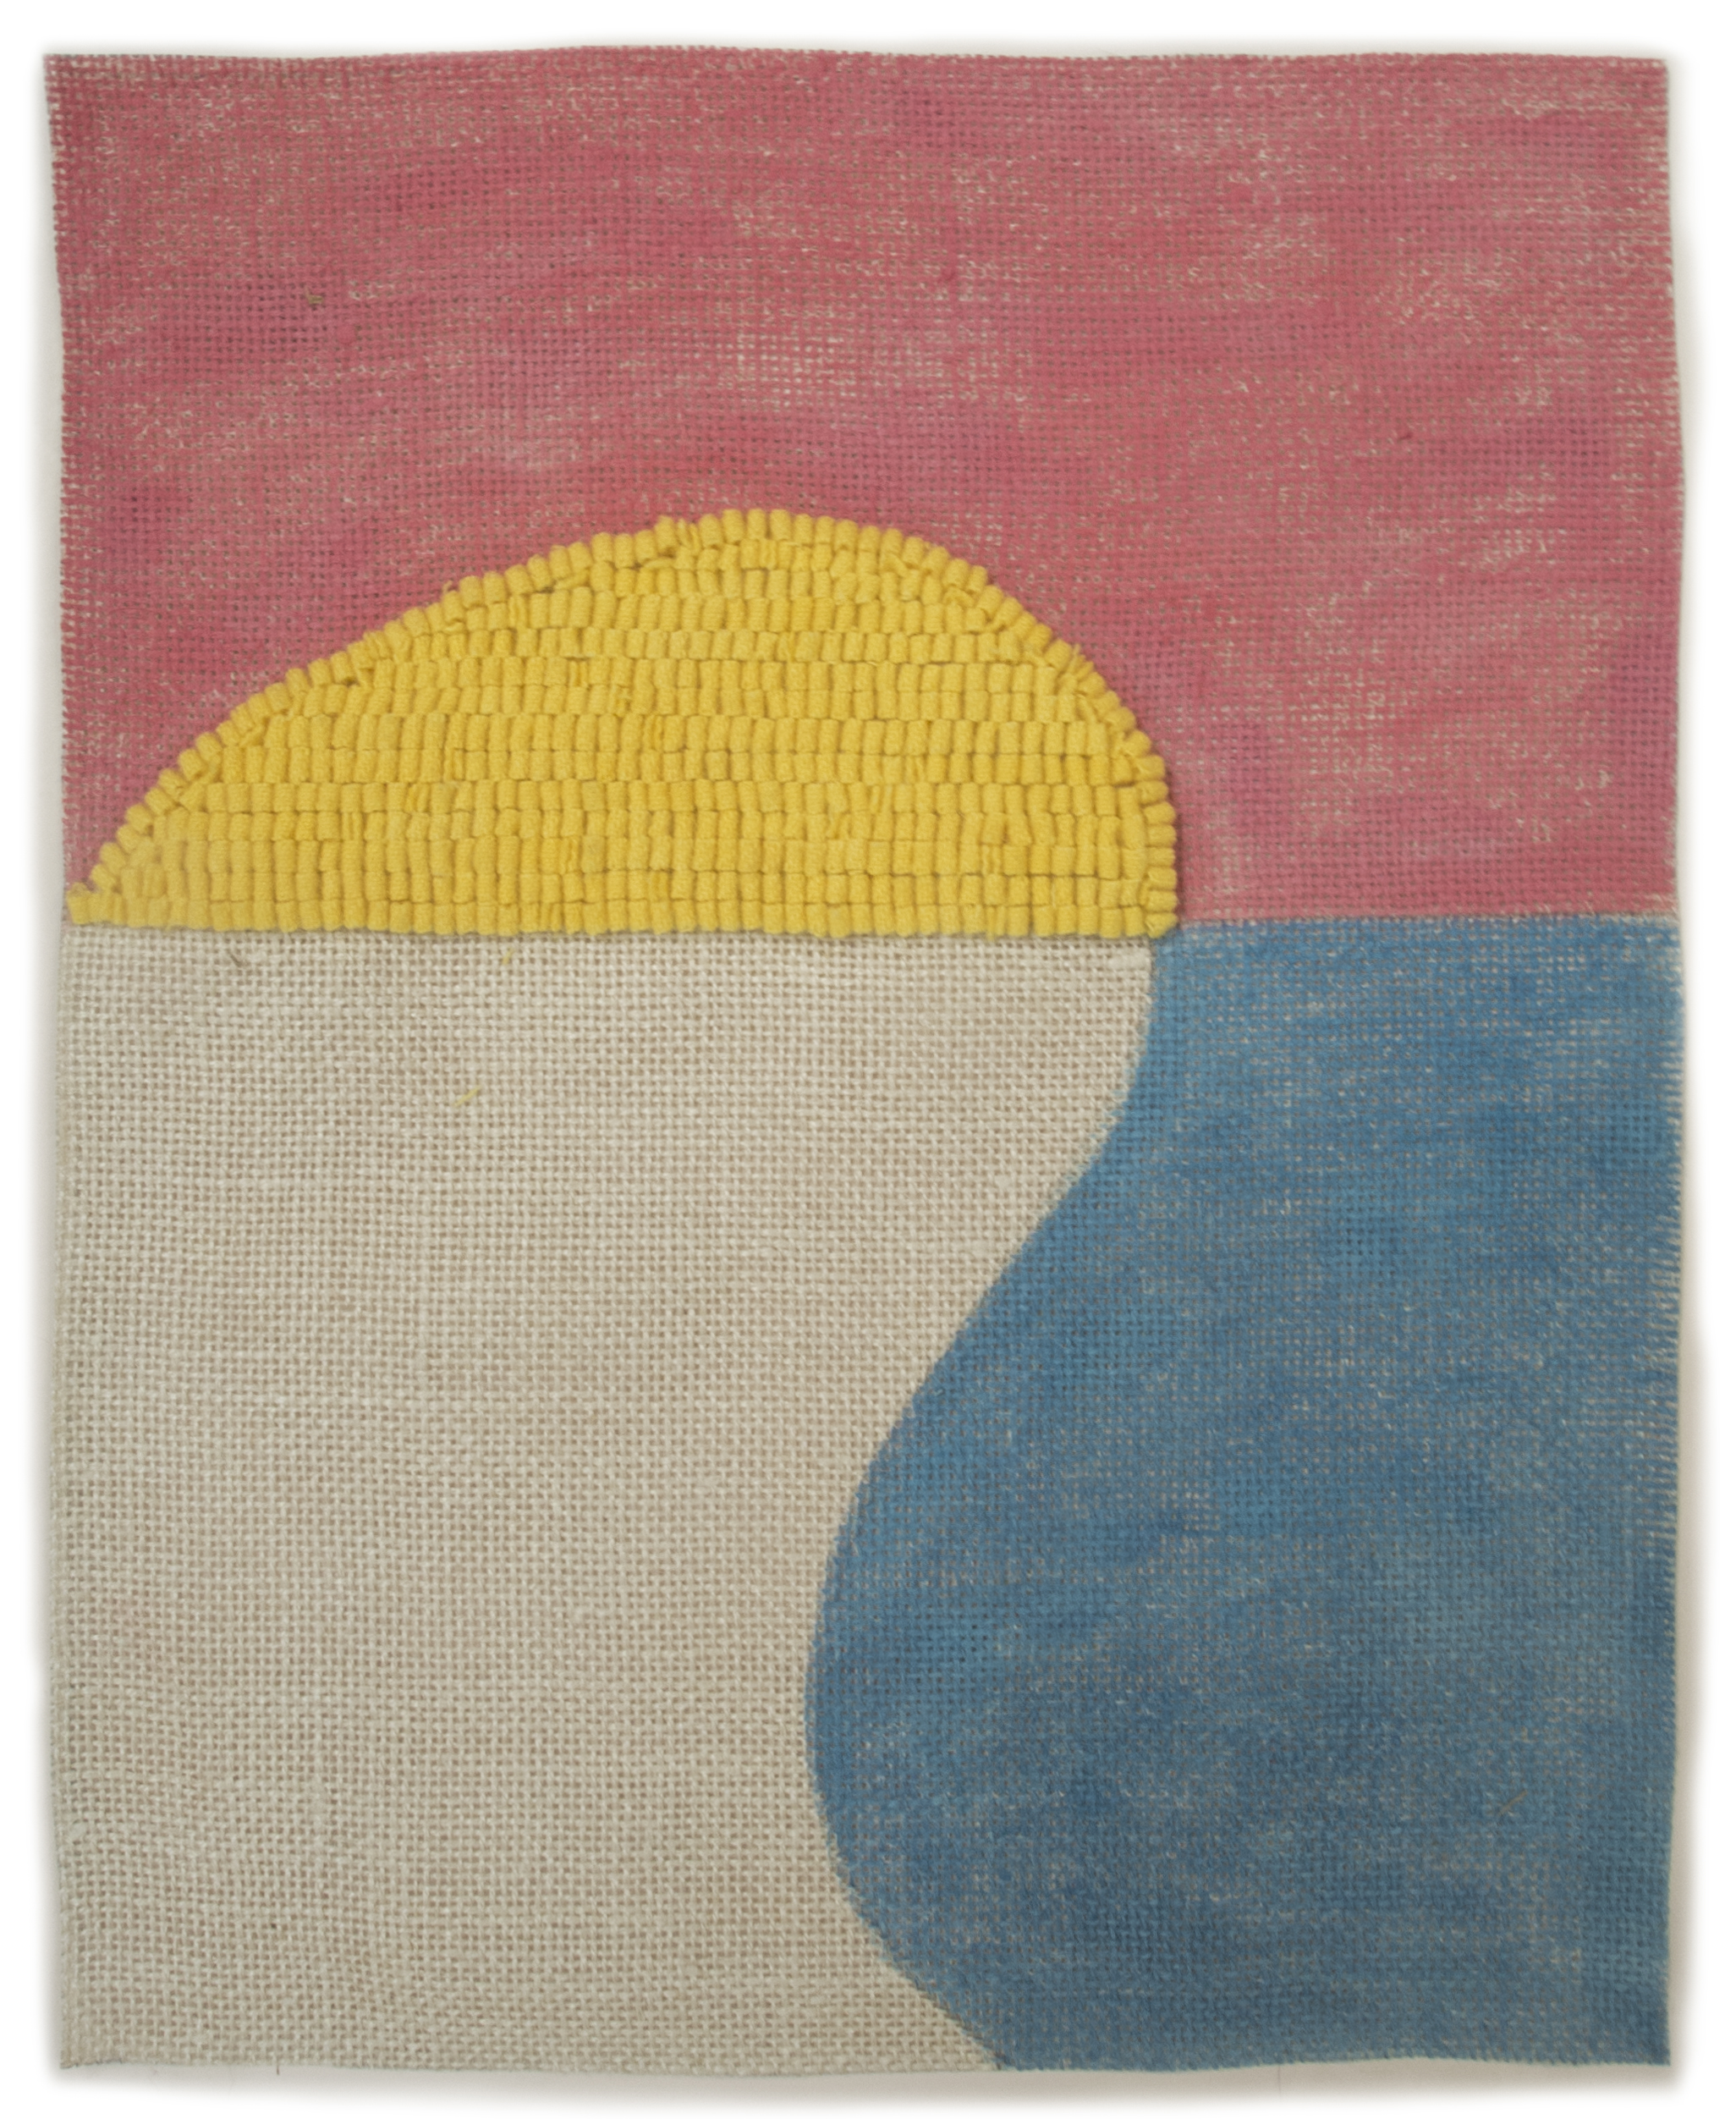 Altoon Sultan: 2013 #12, 2013, hand dyed wool and egg tempera onlinen, multi part, 15 x 12